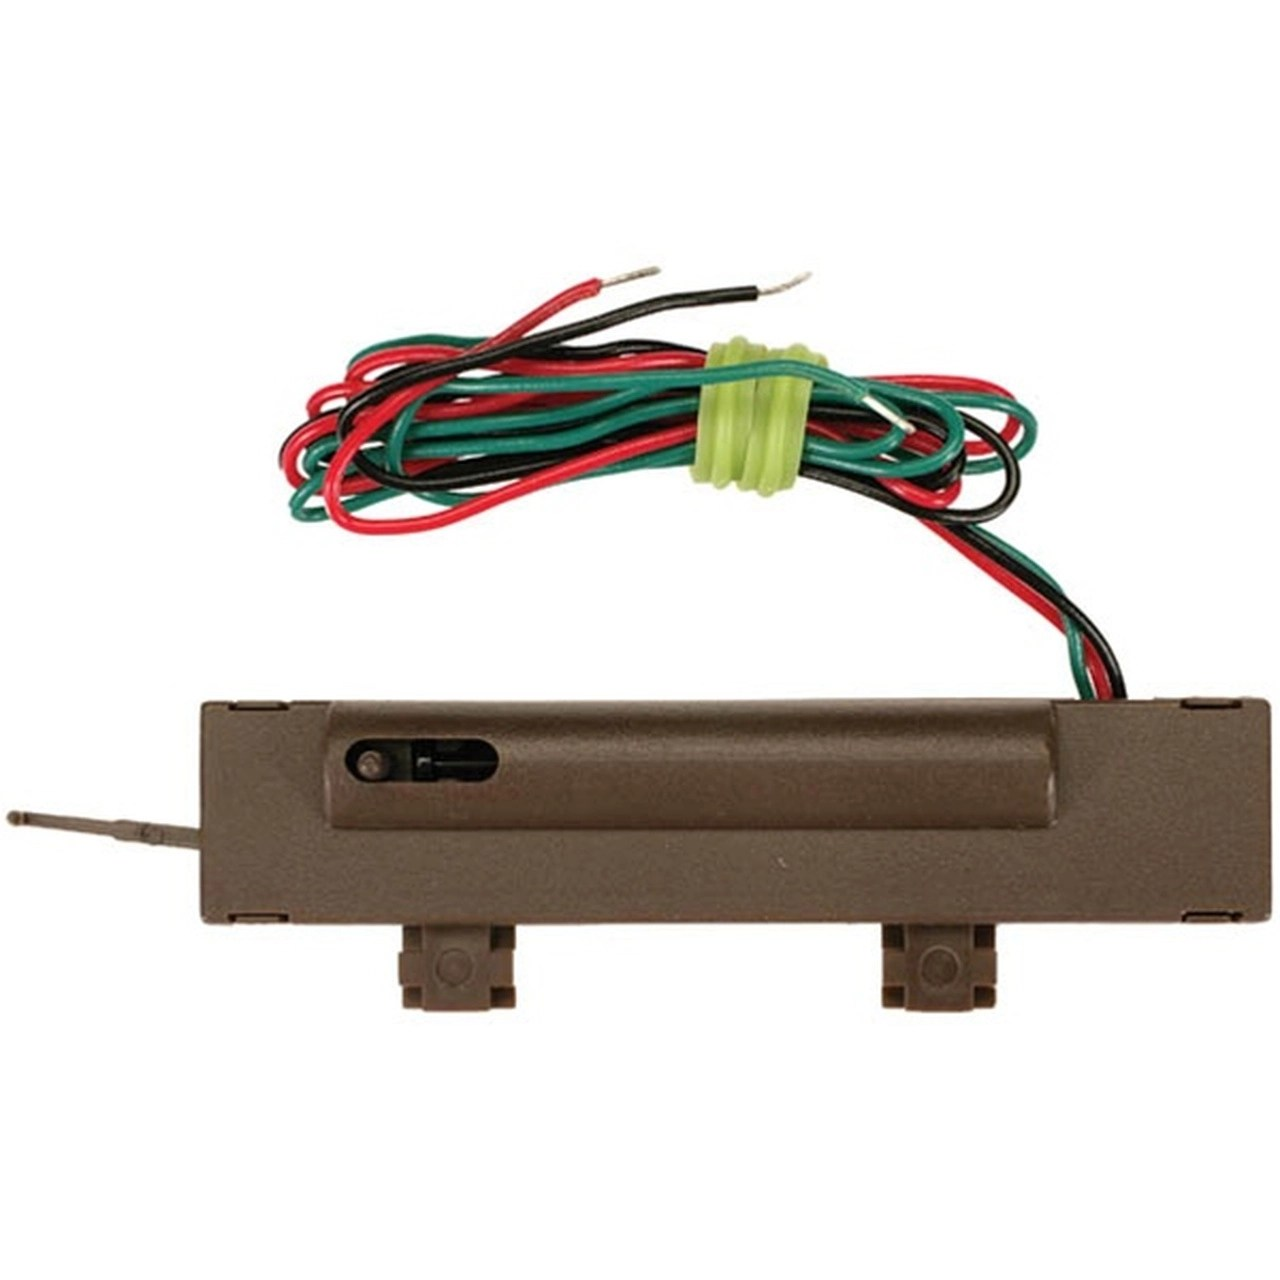 small resolution of atlas ho 585 code 83 track right hand remote switch machineatlas ho 585 code 83 track